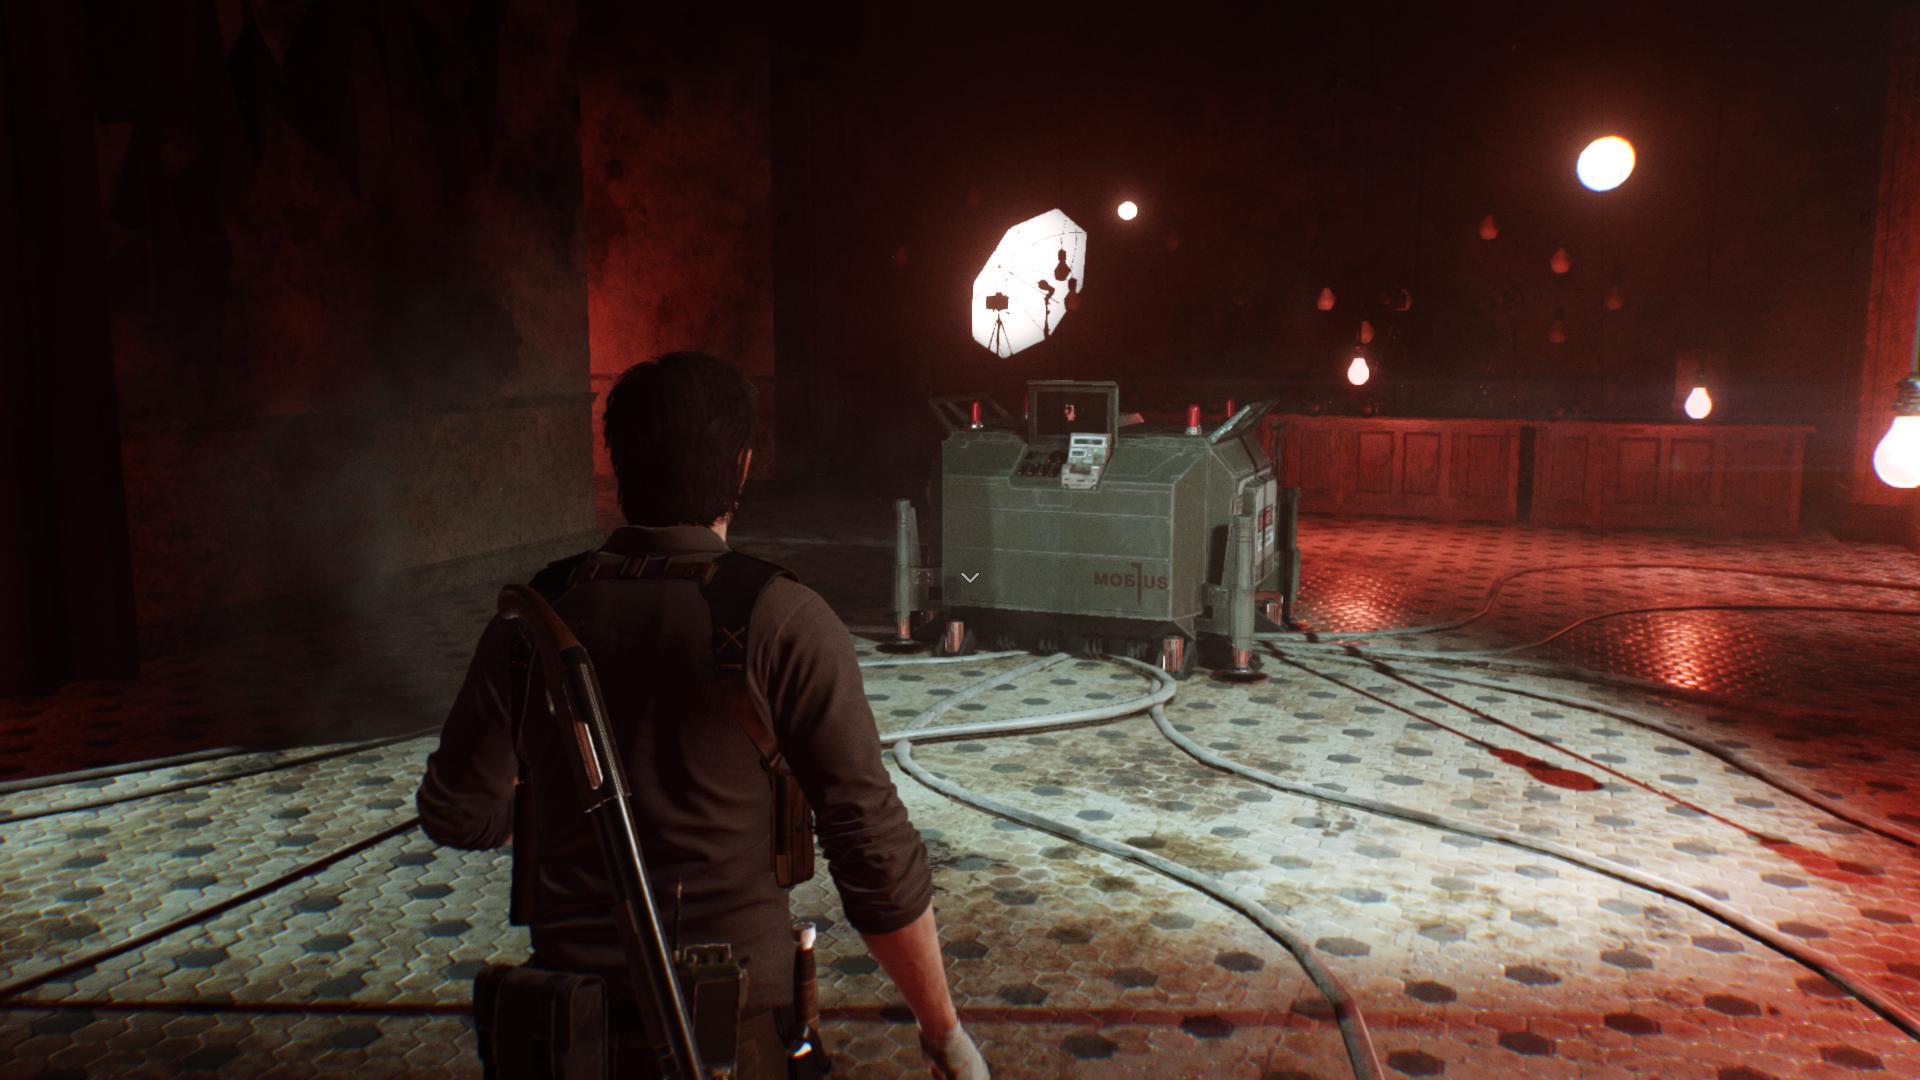 00085.Jpg - Evil Within 2, the